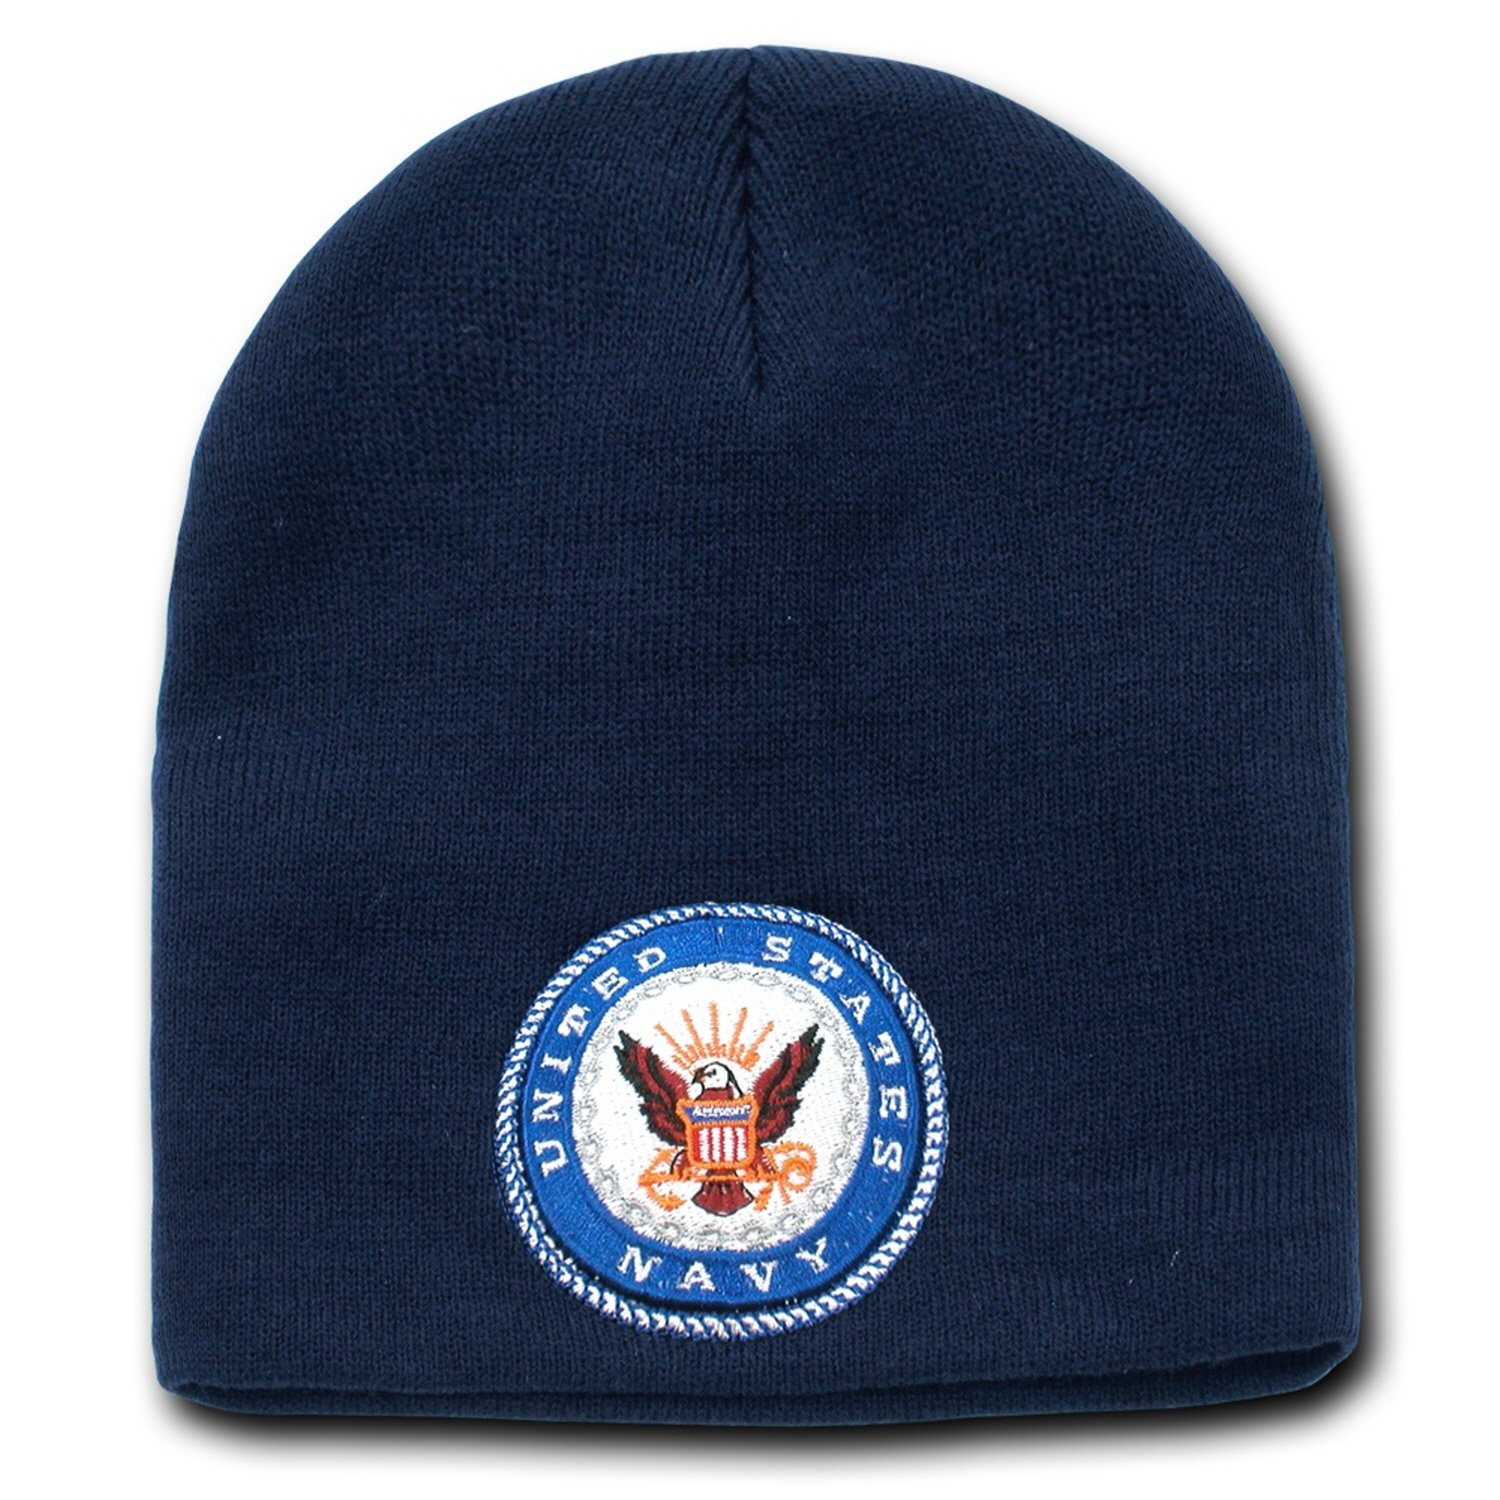 ... hats beanie quality hats high beanies knit navy definition definition  us military beanie ... 56a15d4230a